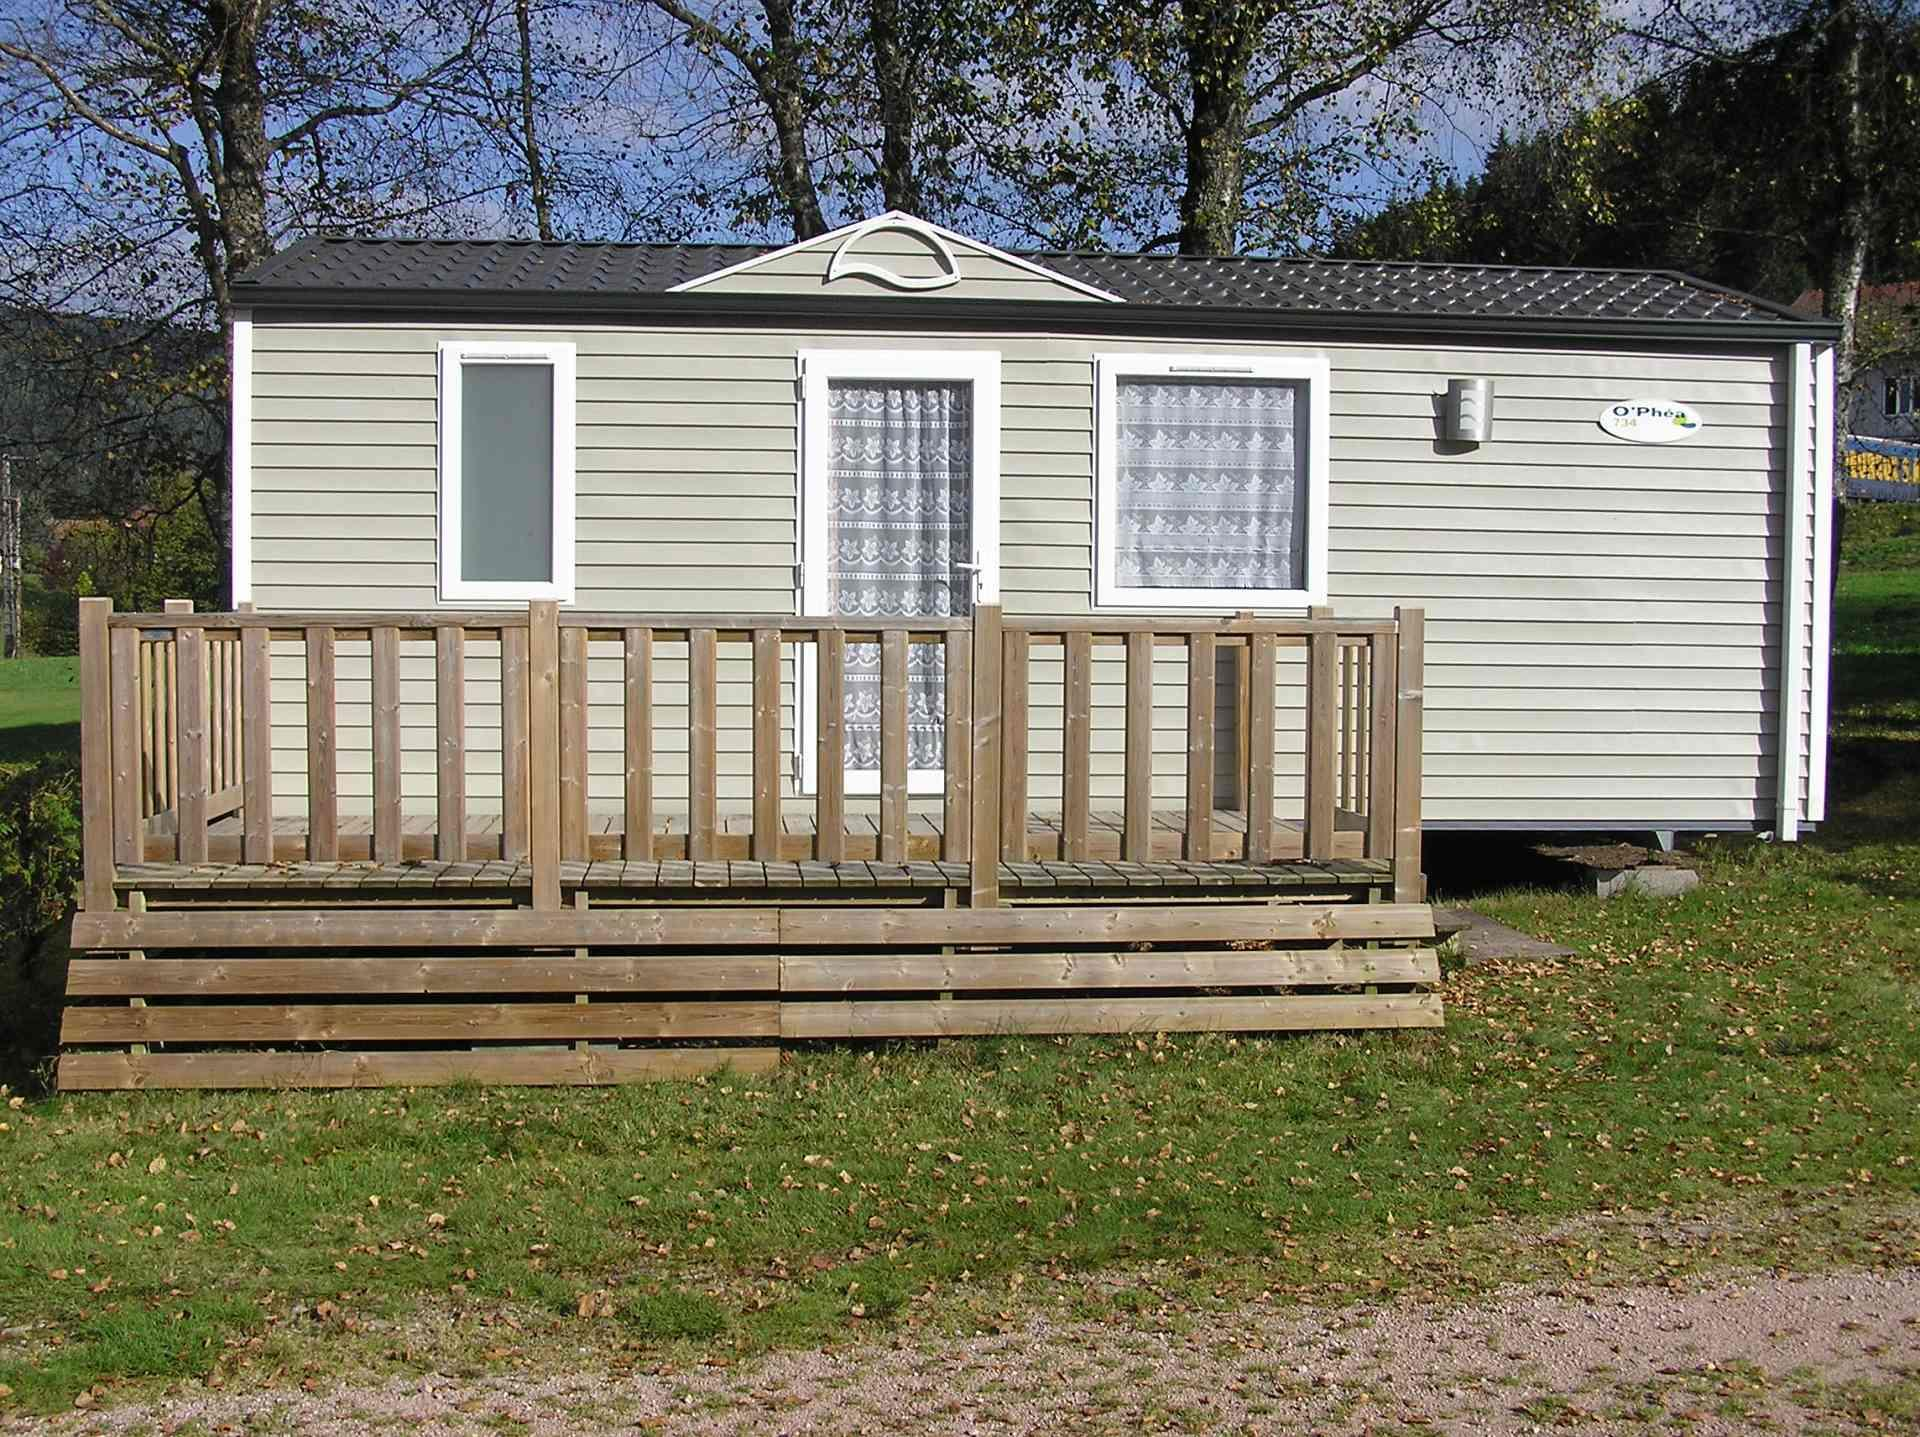 Location - Mobilhome O'hara 734 (2010) 2 Ch. - 26M² - 4/5 Pers. - Camping Les Granges-Bas